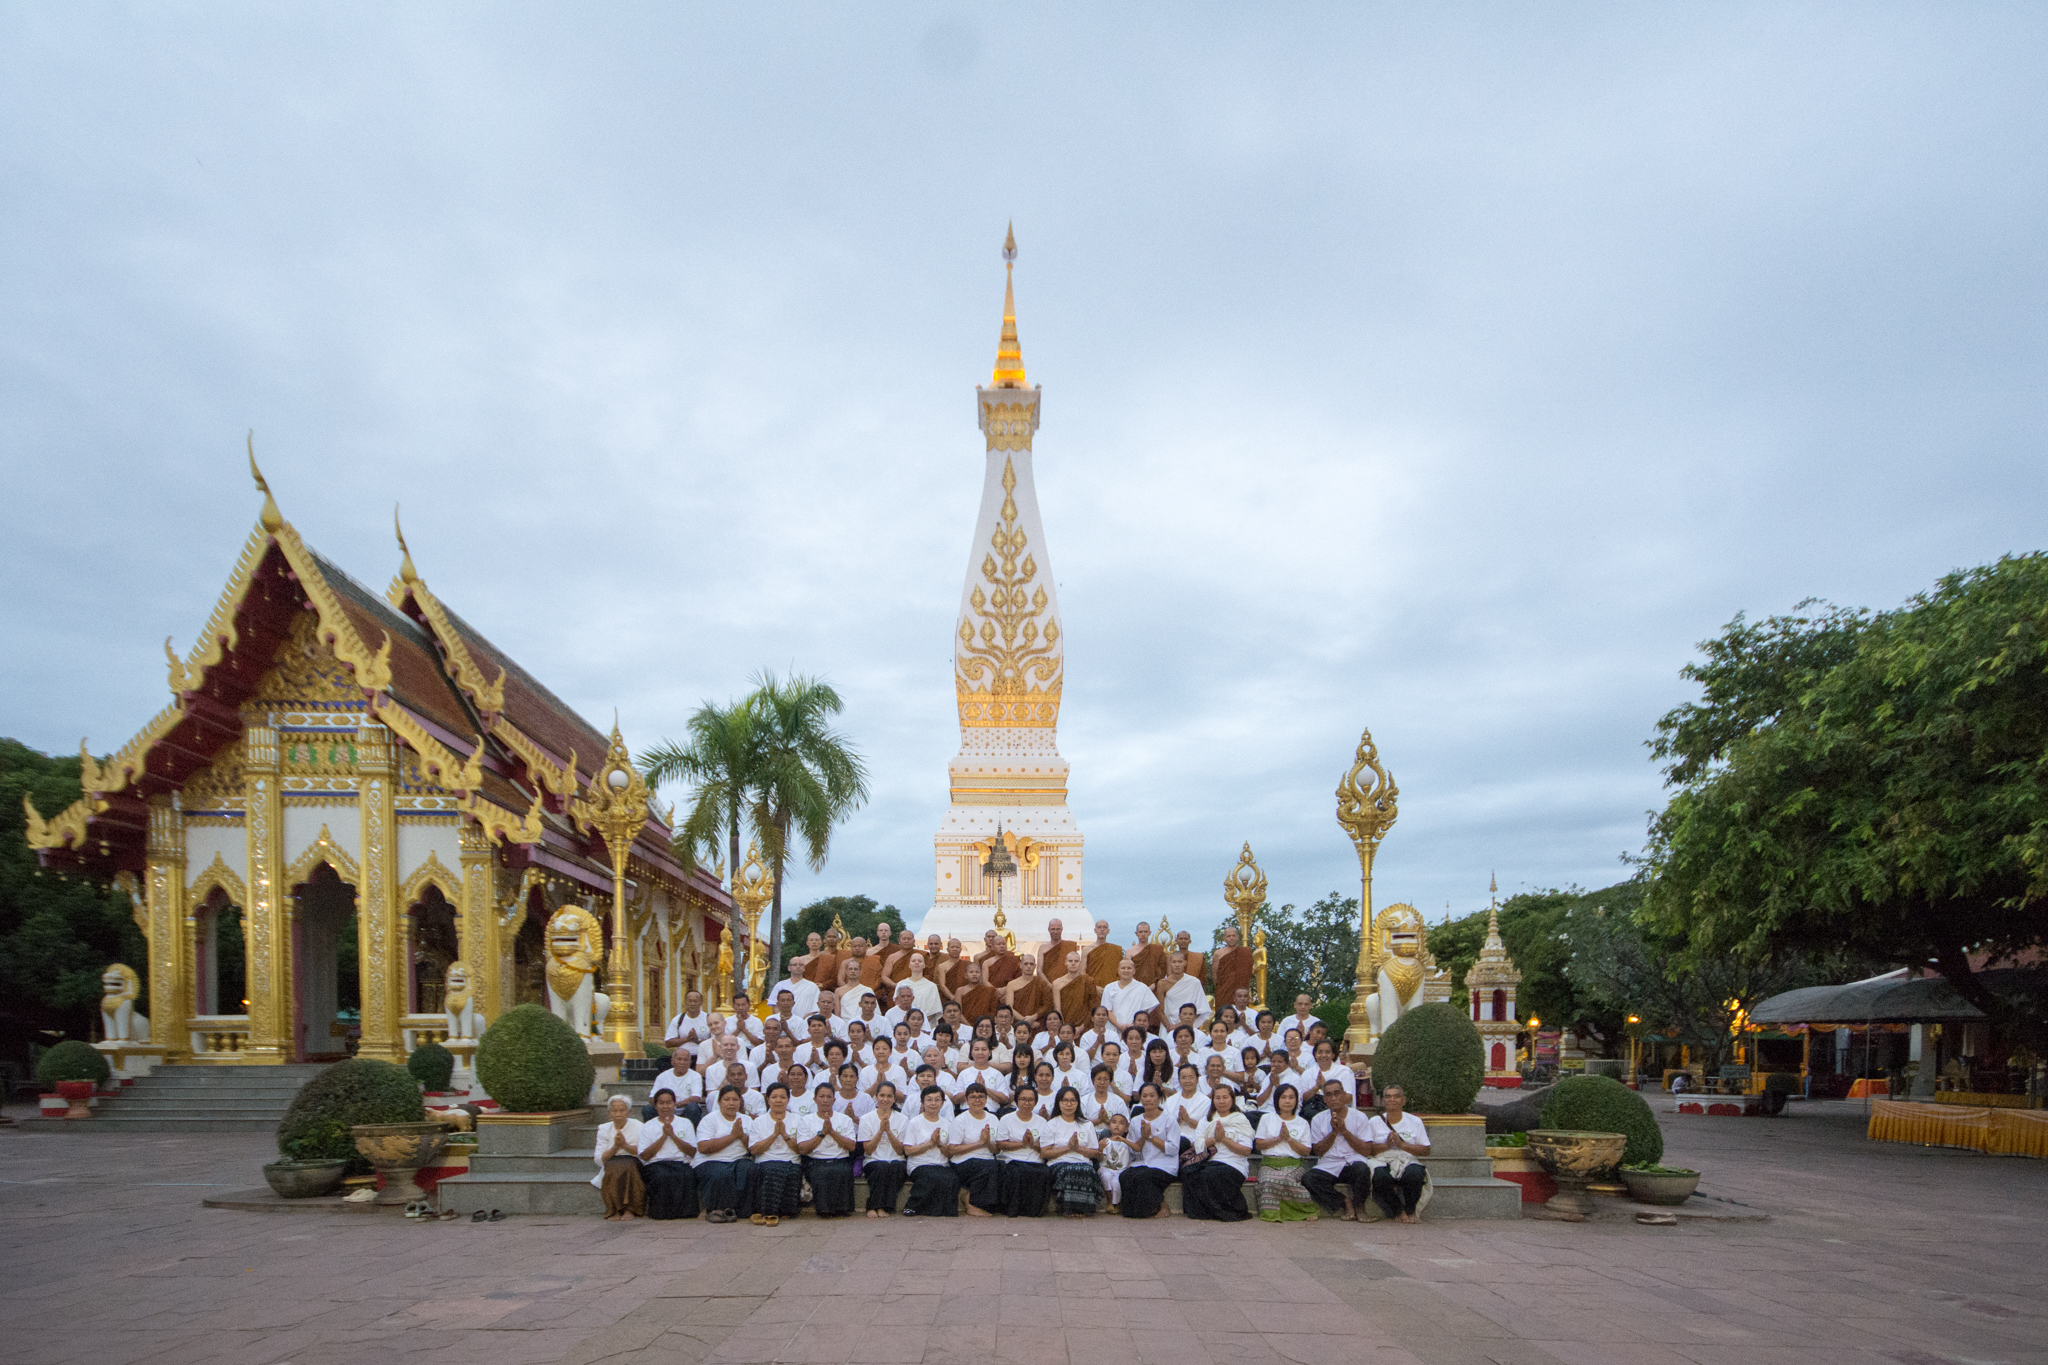 On the occasion of Ajahn Kevalis 50th Birthday, he and three monastic friends that also turned 50 in 2018 (Phrakhru Subbatapunnathada, Phrakhru Sangharak Sawaeng and Tan Ajahn Parivat) took the Sangha and the lay-community of Wat Pah Nanachat to pay respects, and meditate at Phra That Phanom Chedi in Nakhorn Phanom Province.